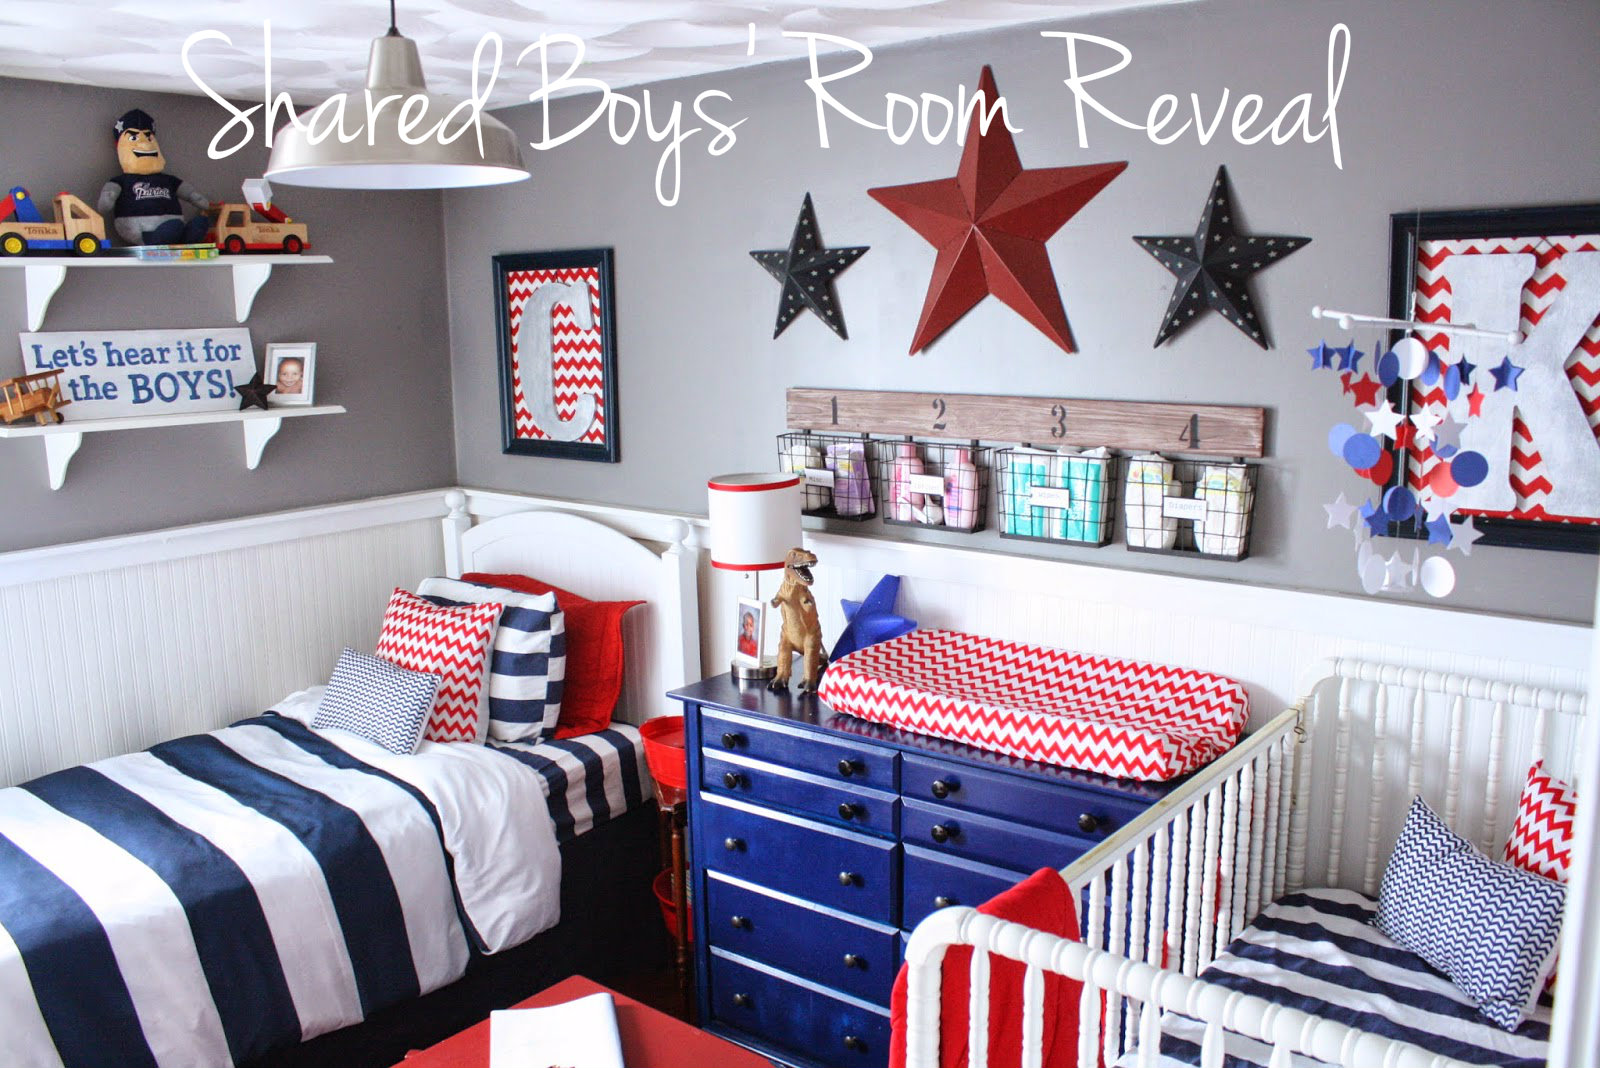 Creating A Comfortable And Organized Shared Bedroom/nursery For My Boys,  Was Top Priority When Planning This Space. It Has Not Been Easy Keeping My  Almost 6 ...